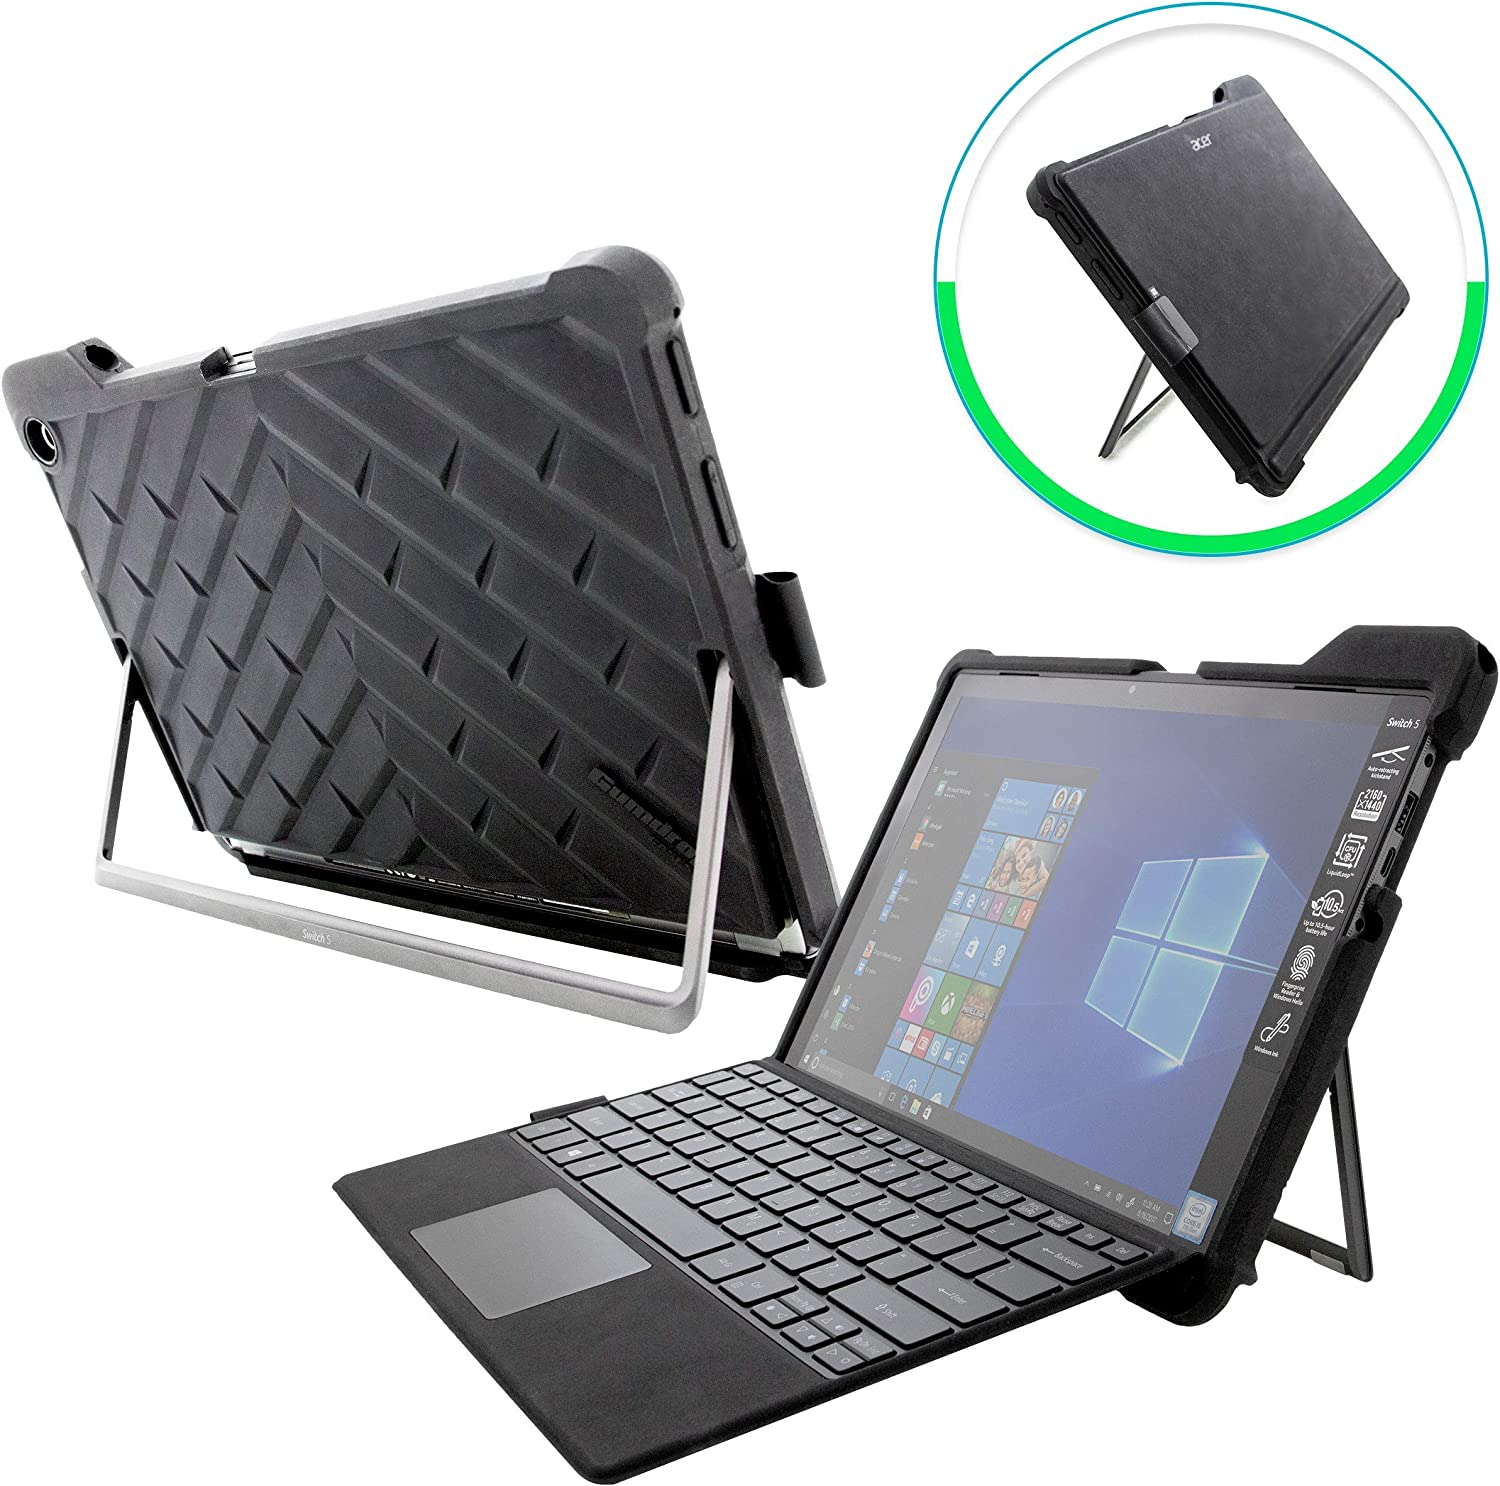 Gumdrop DropTech Case with Built-in Stylus Slot for Acer Switch 5 Laptop for Commercial, Business and Office Essentials- Black, Rugged, Shock Absorbing, Extreme Drop Protection